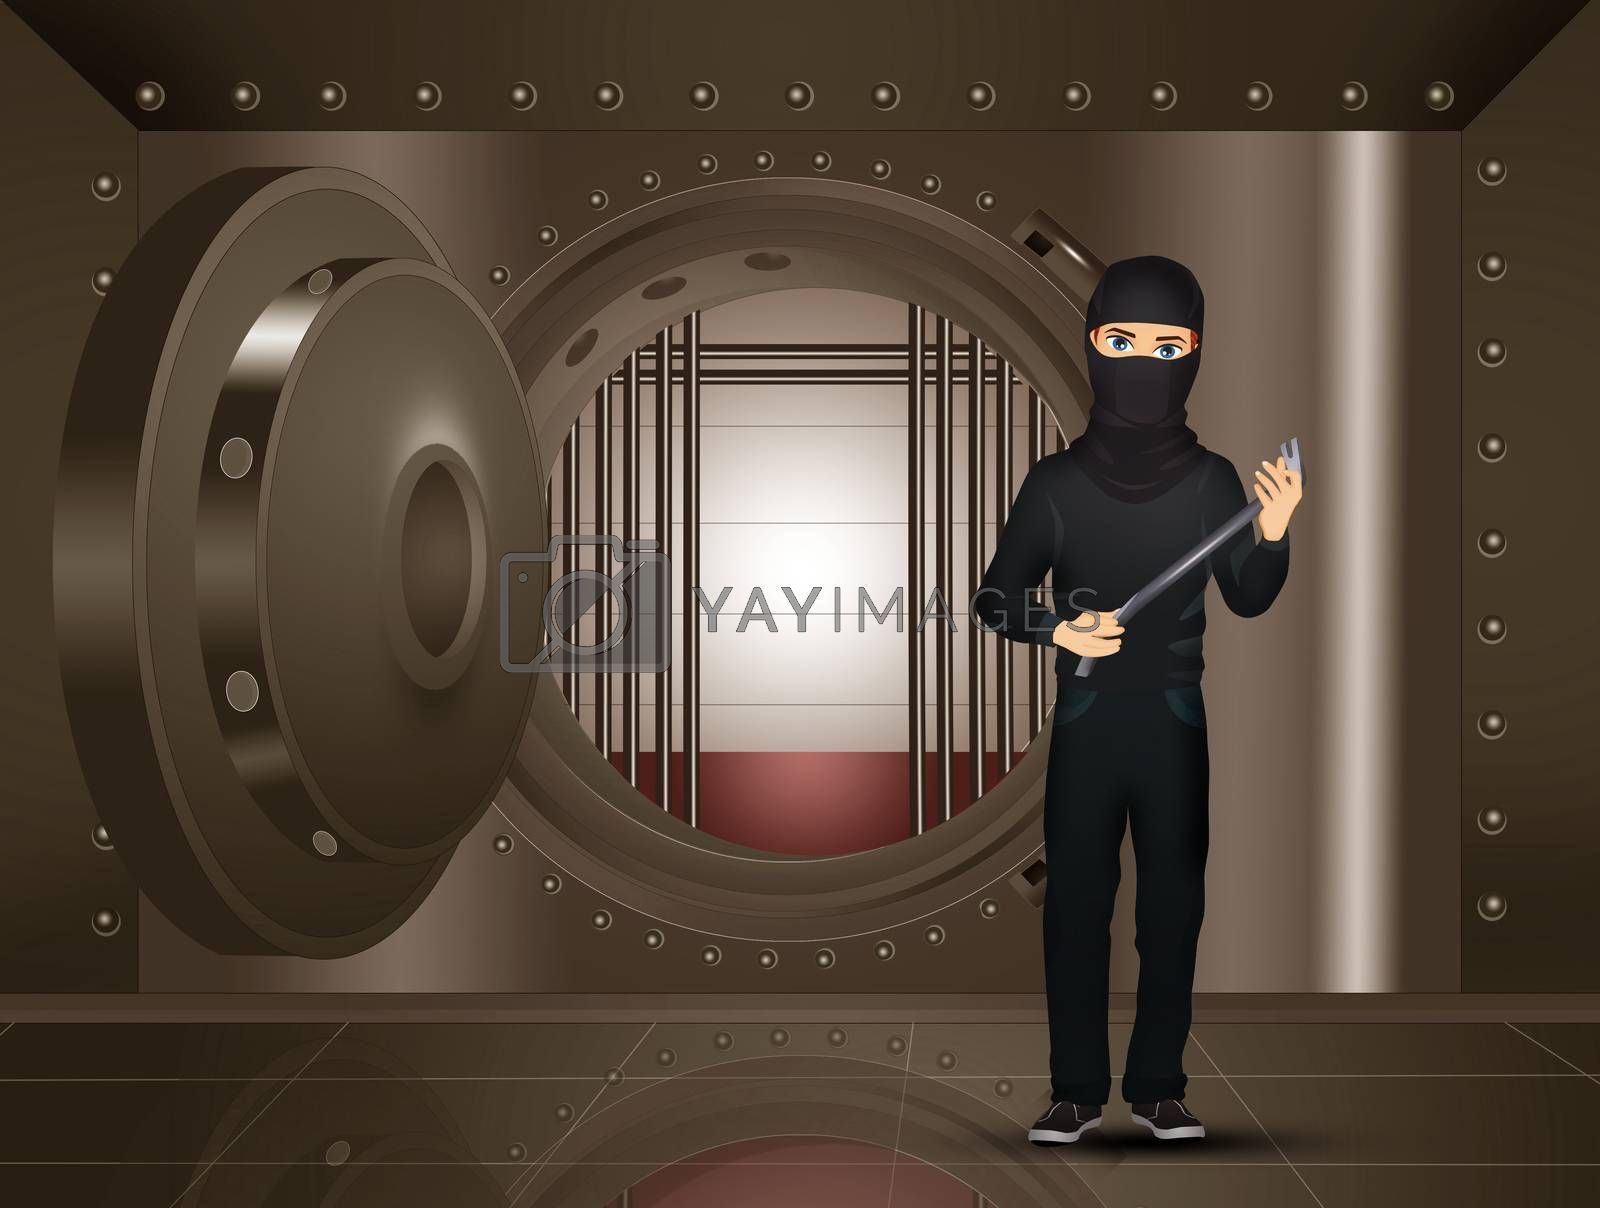 illustration of thief in the bank's bunker